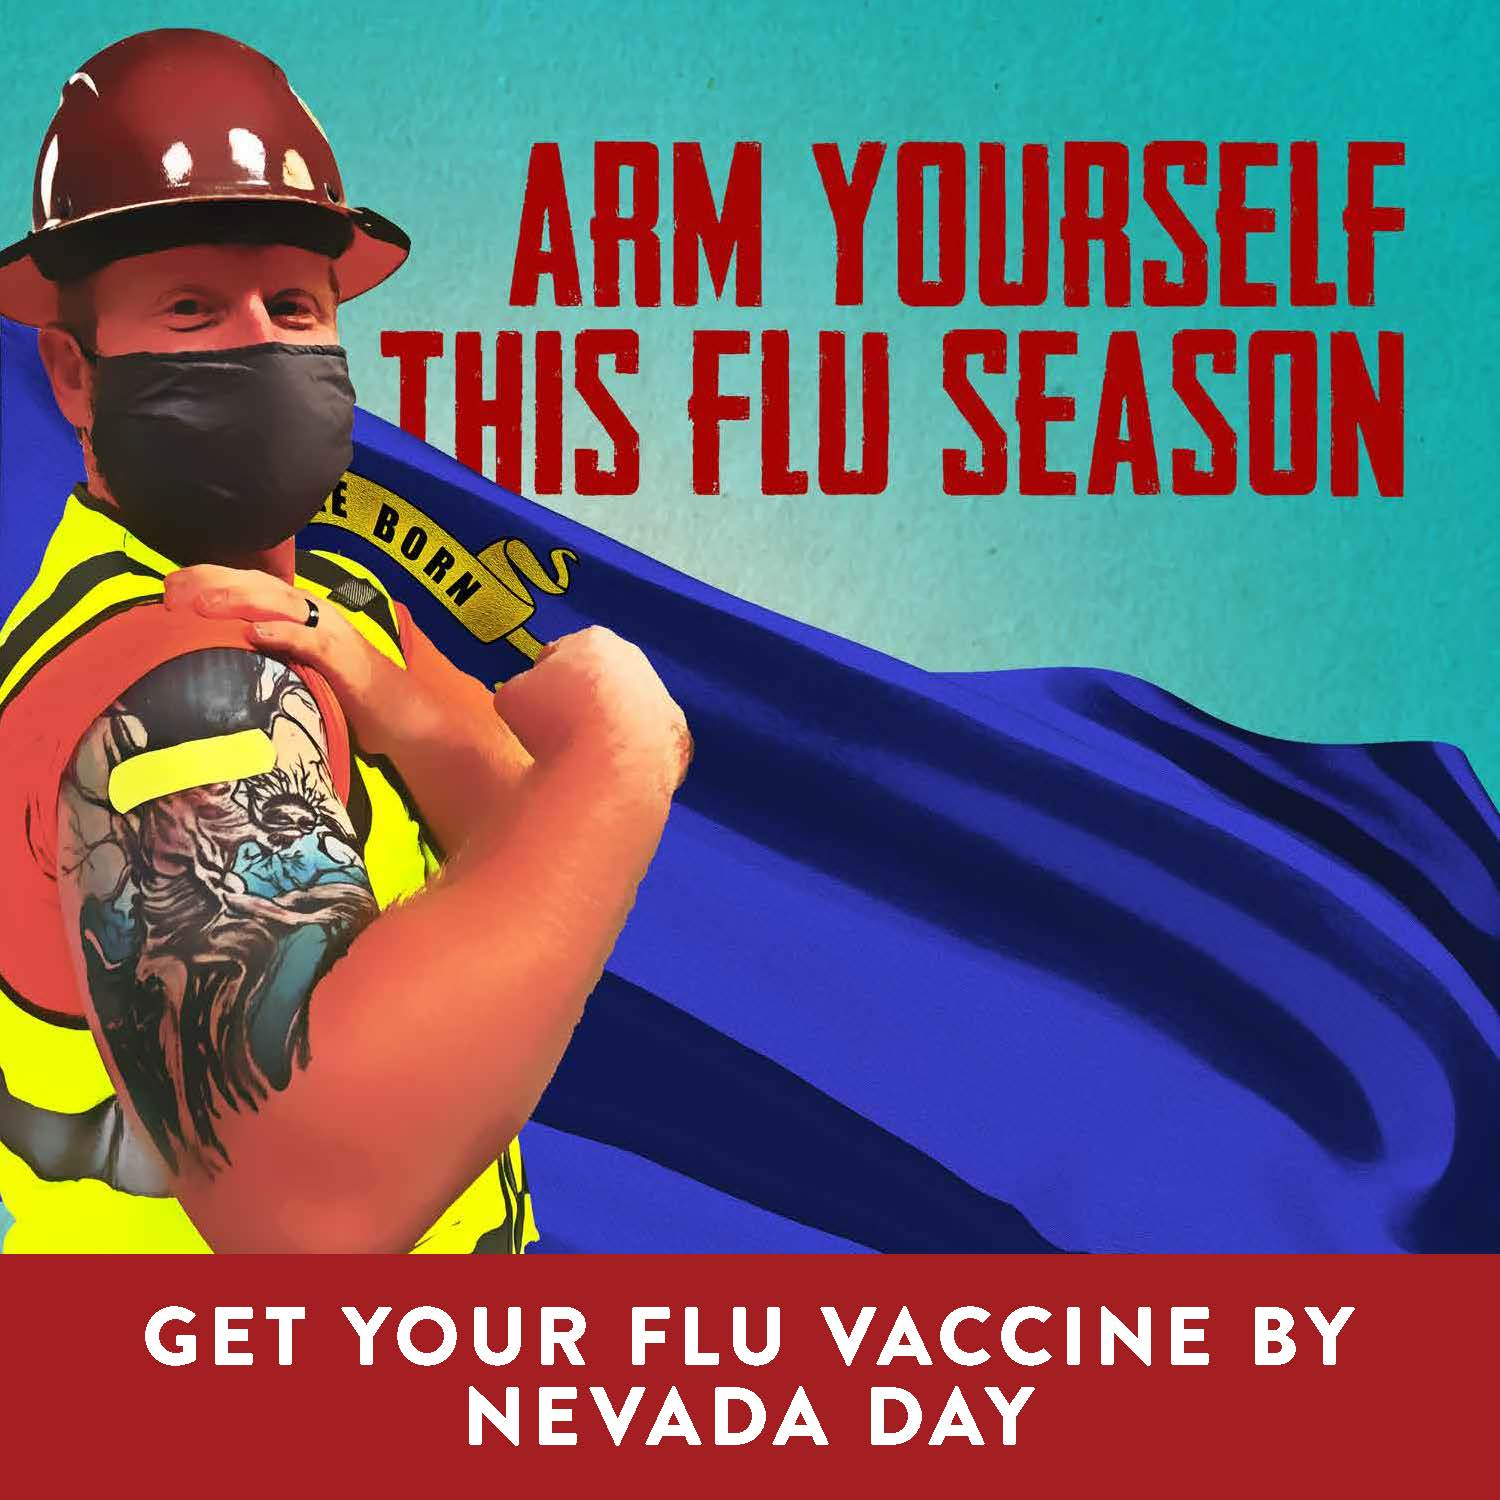 social media graphic for flu vaccination with construction worker